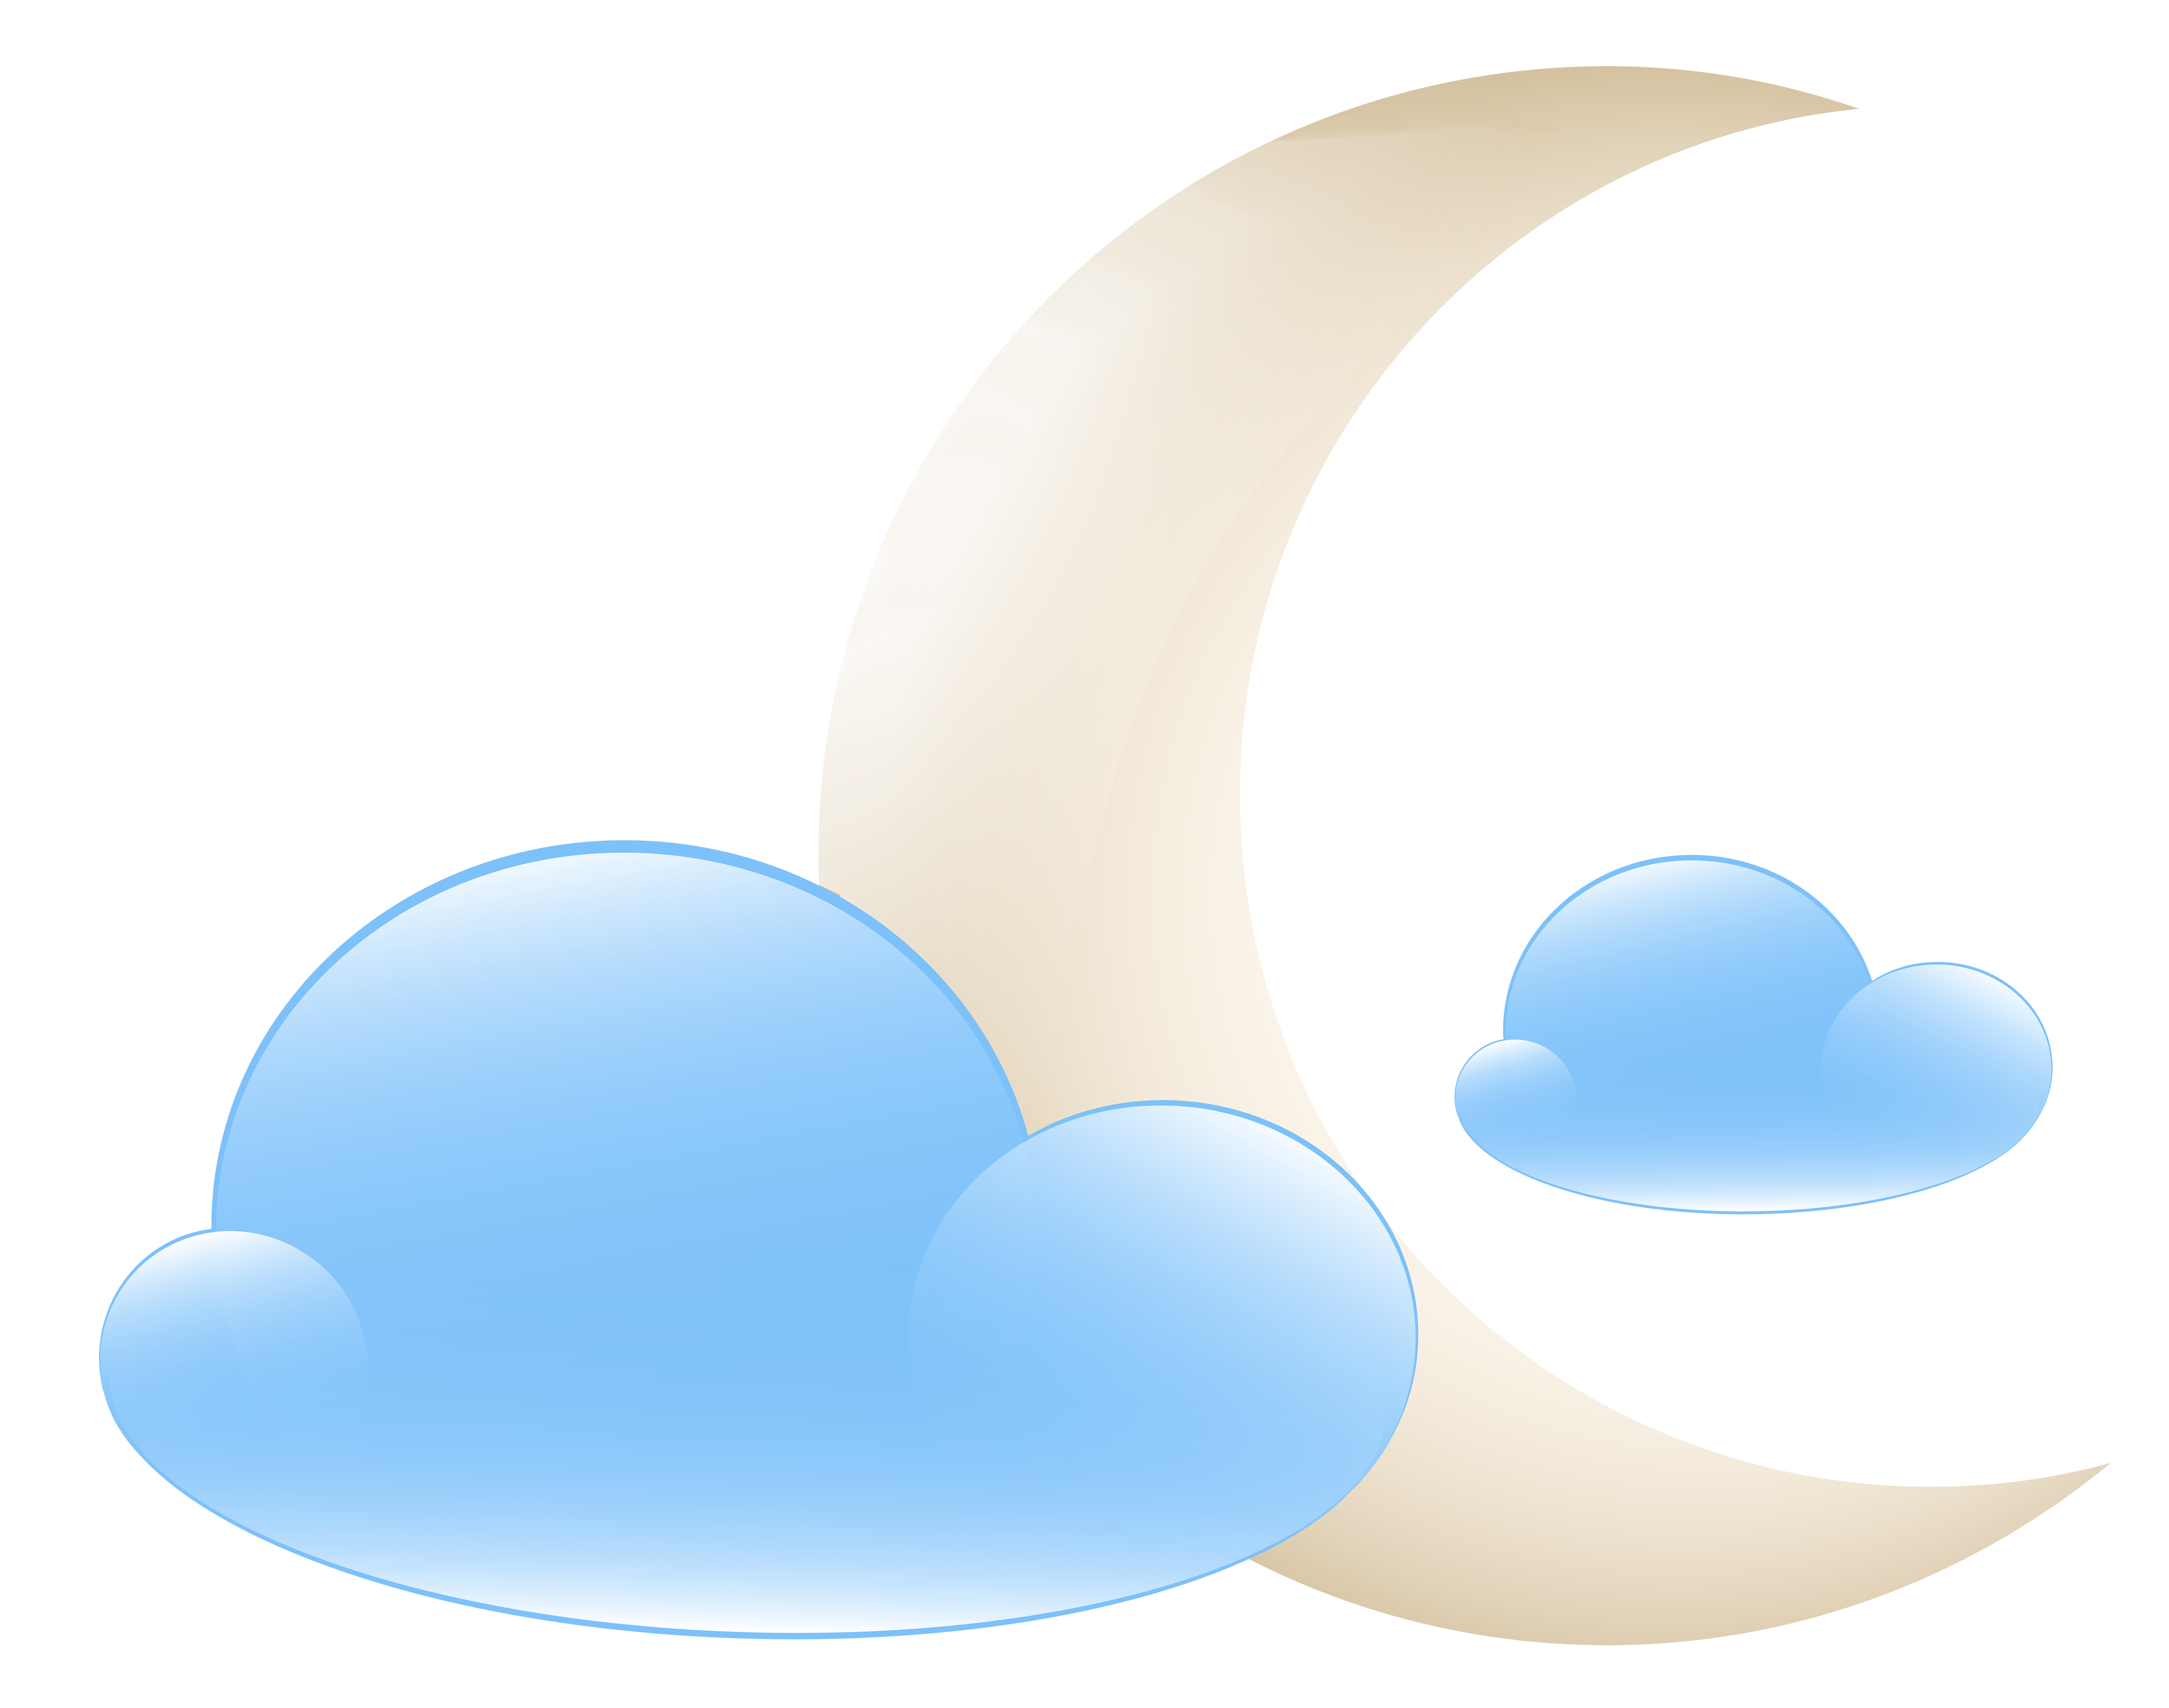 jpg freeuse download With clouds weather icon. Moon clipart sky clipart.